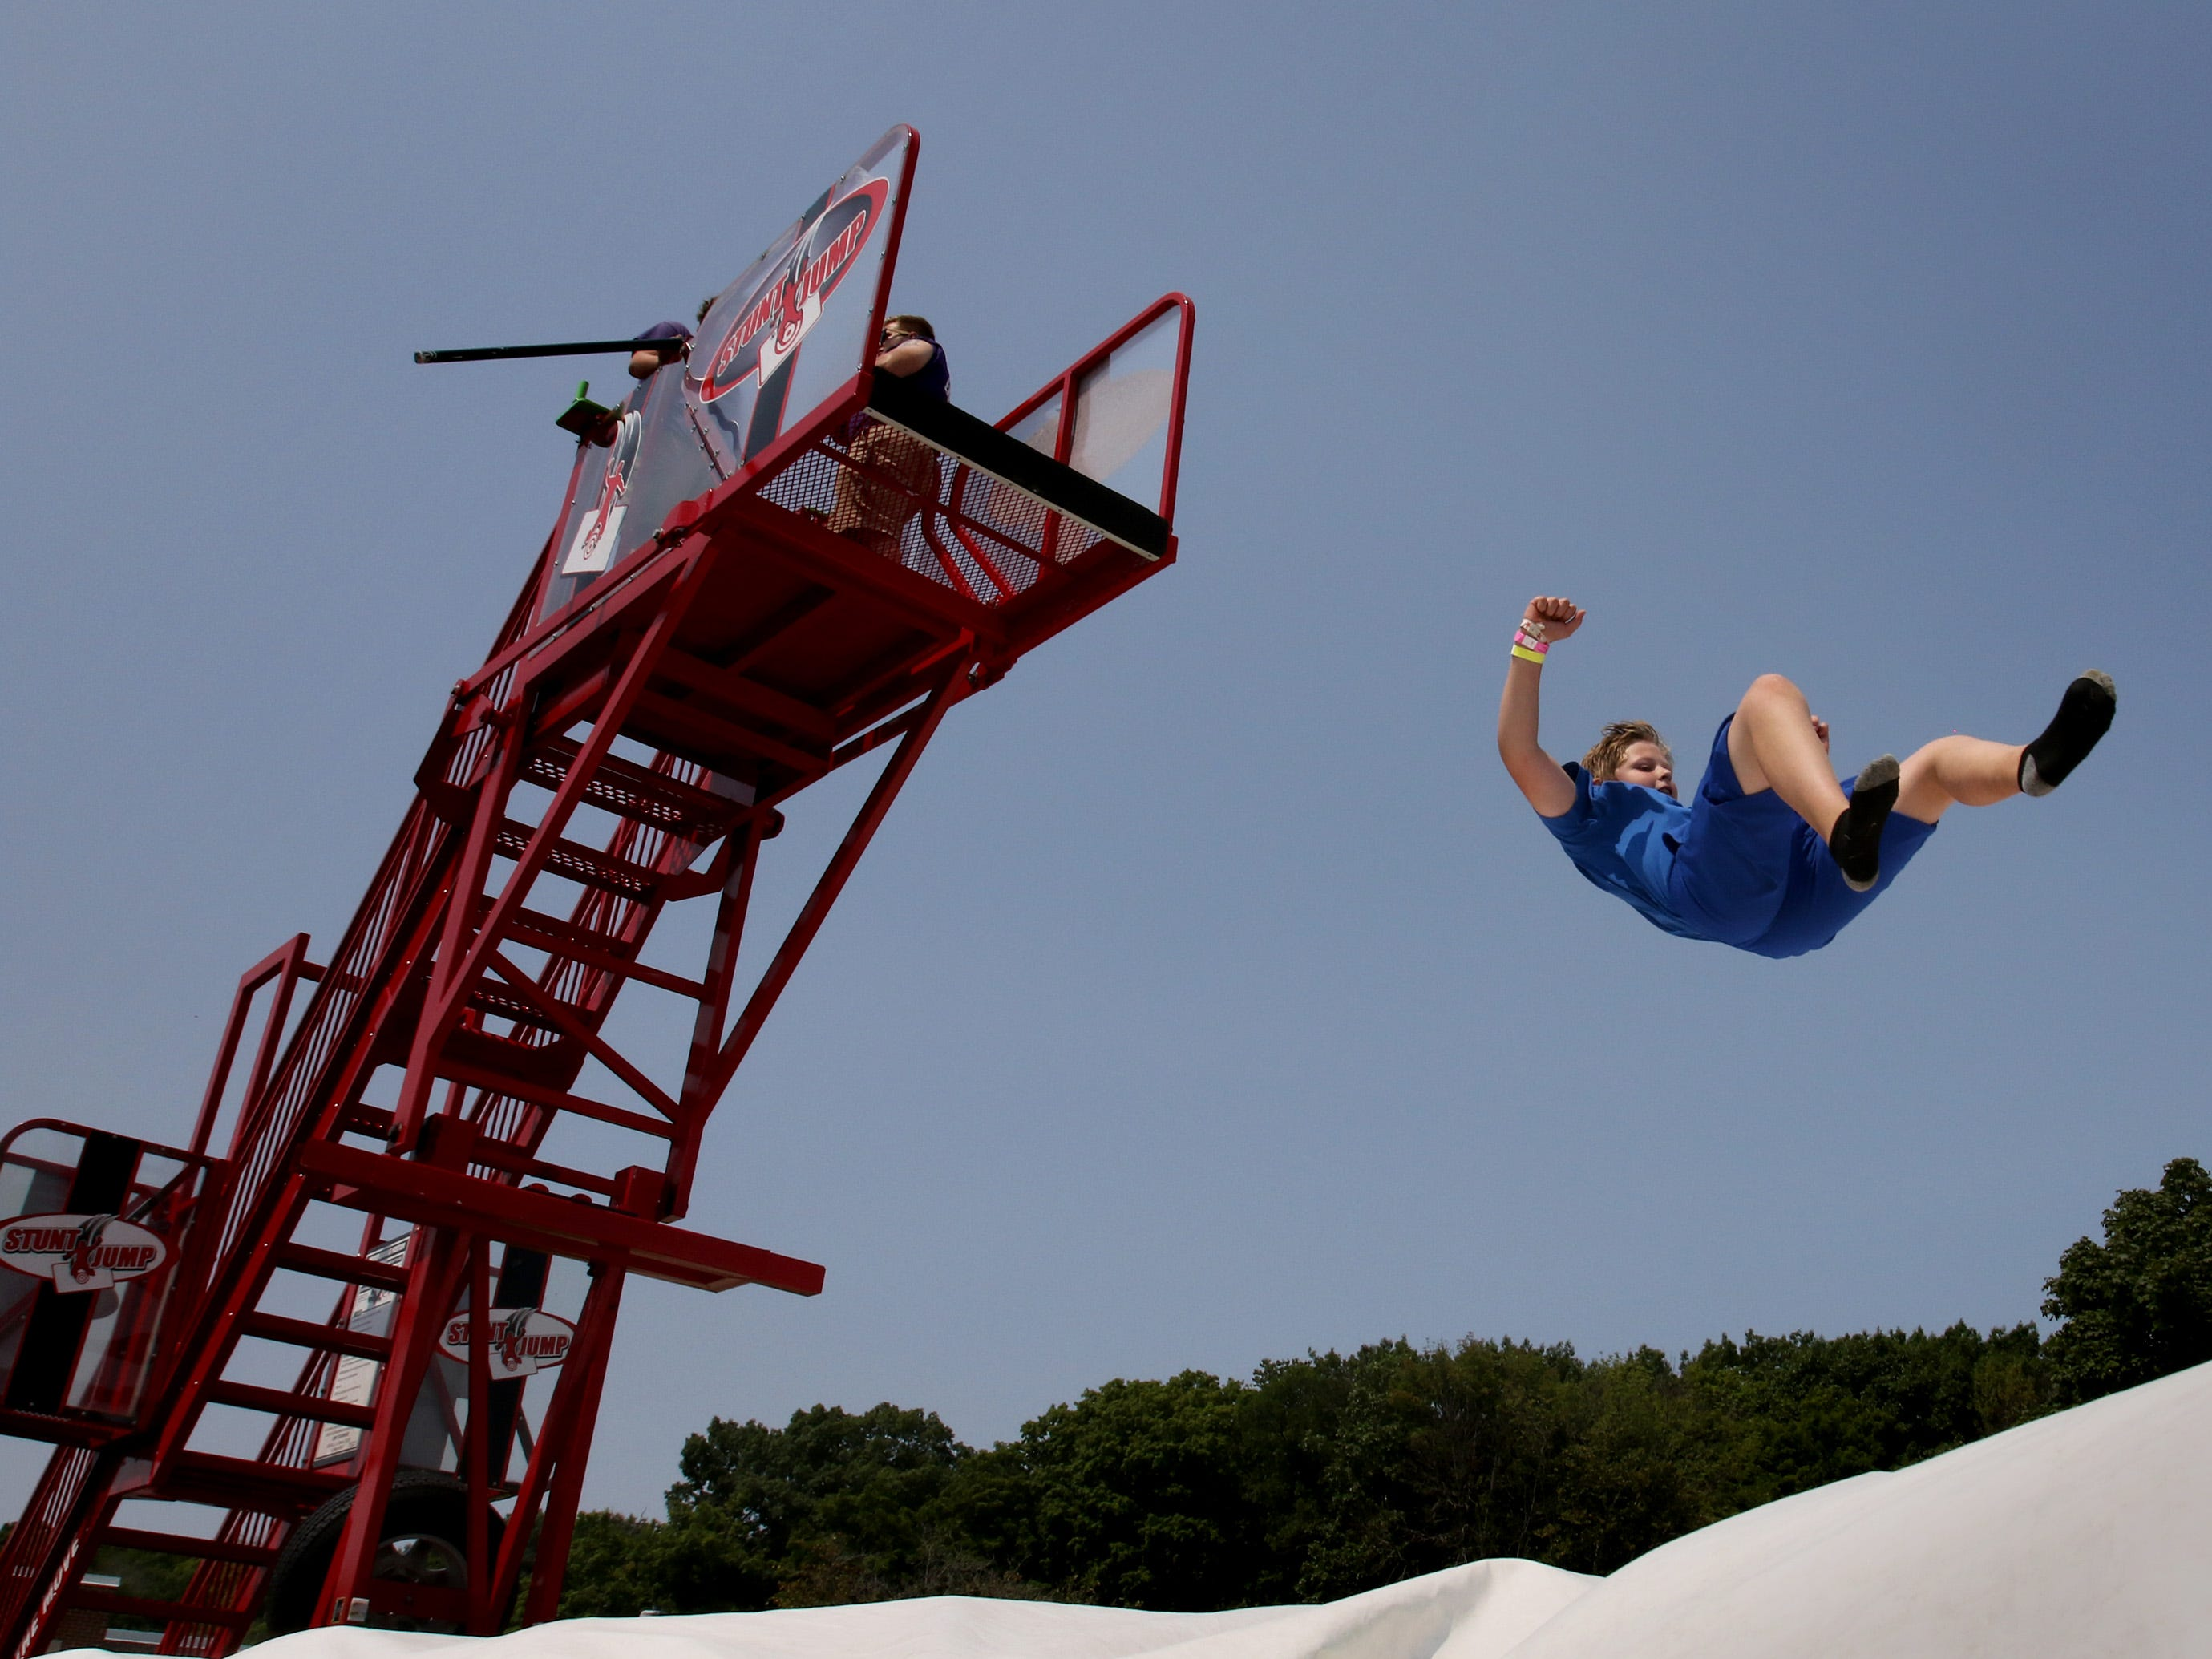 Eric Runkel, 11, makes a leap of faith off the Stunt Jump during his roving act at Greendale Village Days on Aug. 11.